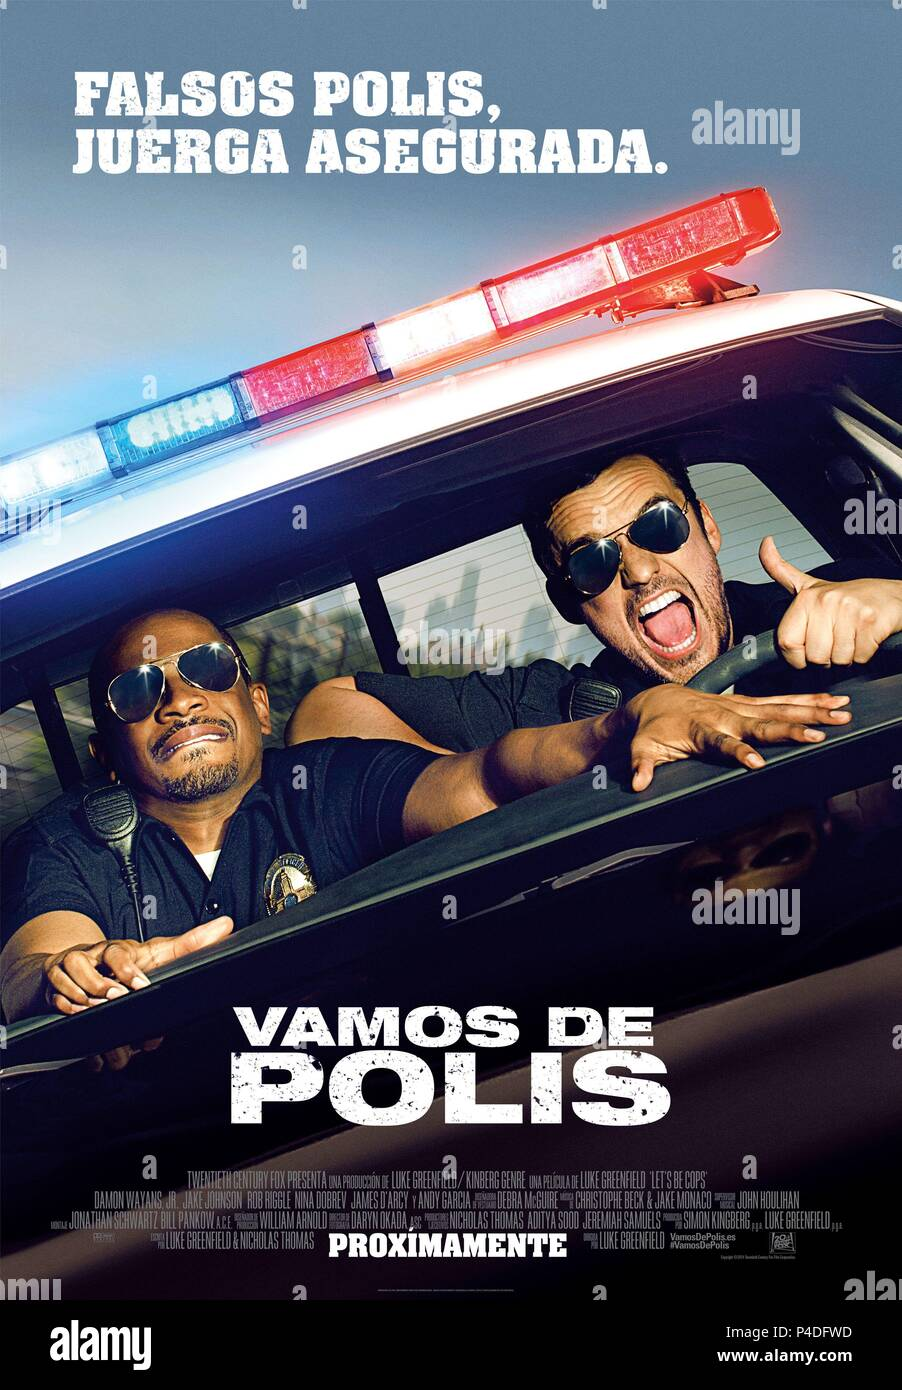 Original Film Title: LET'S BE COPS.  English Title: LET'S BE COPS.  Film Director: LUKE GREENFIELD.  Year: 2014. Credit: GENRE FILMS/TWENTIETH CENTURY FOX FILM CORPORATION/WIDEAWAKE / Album - Stock Image